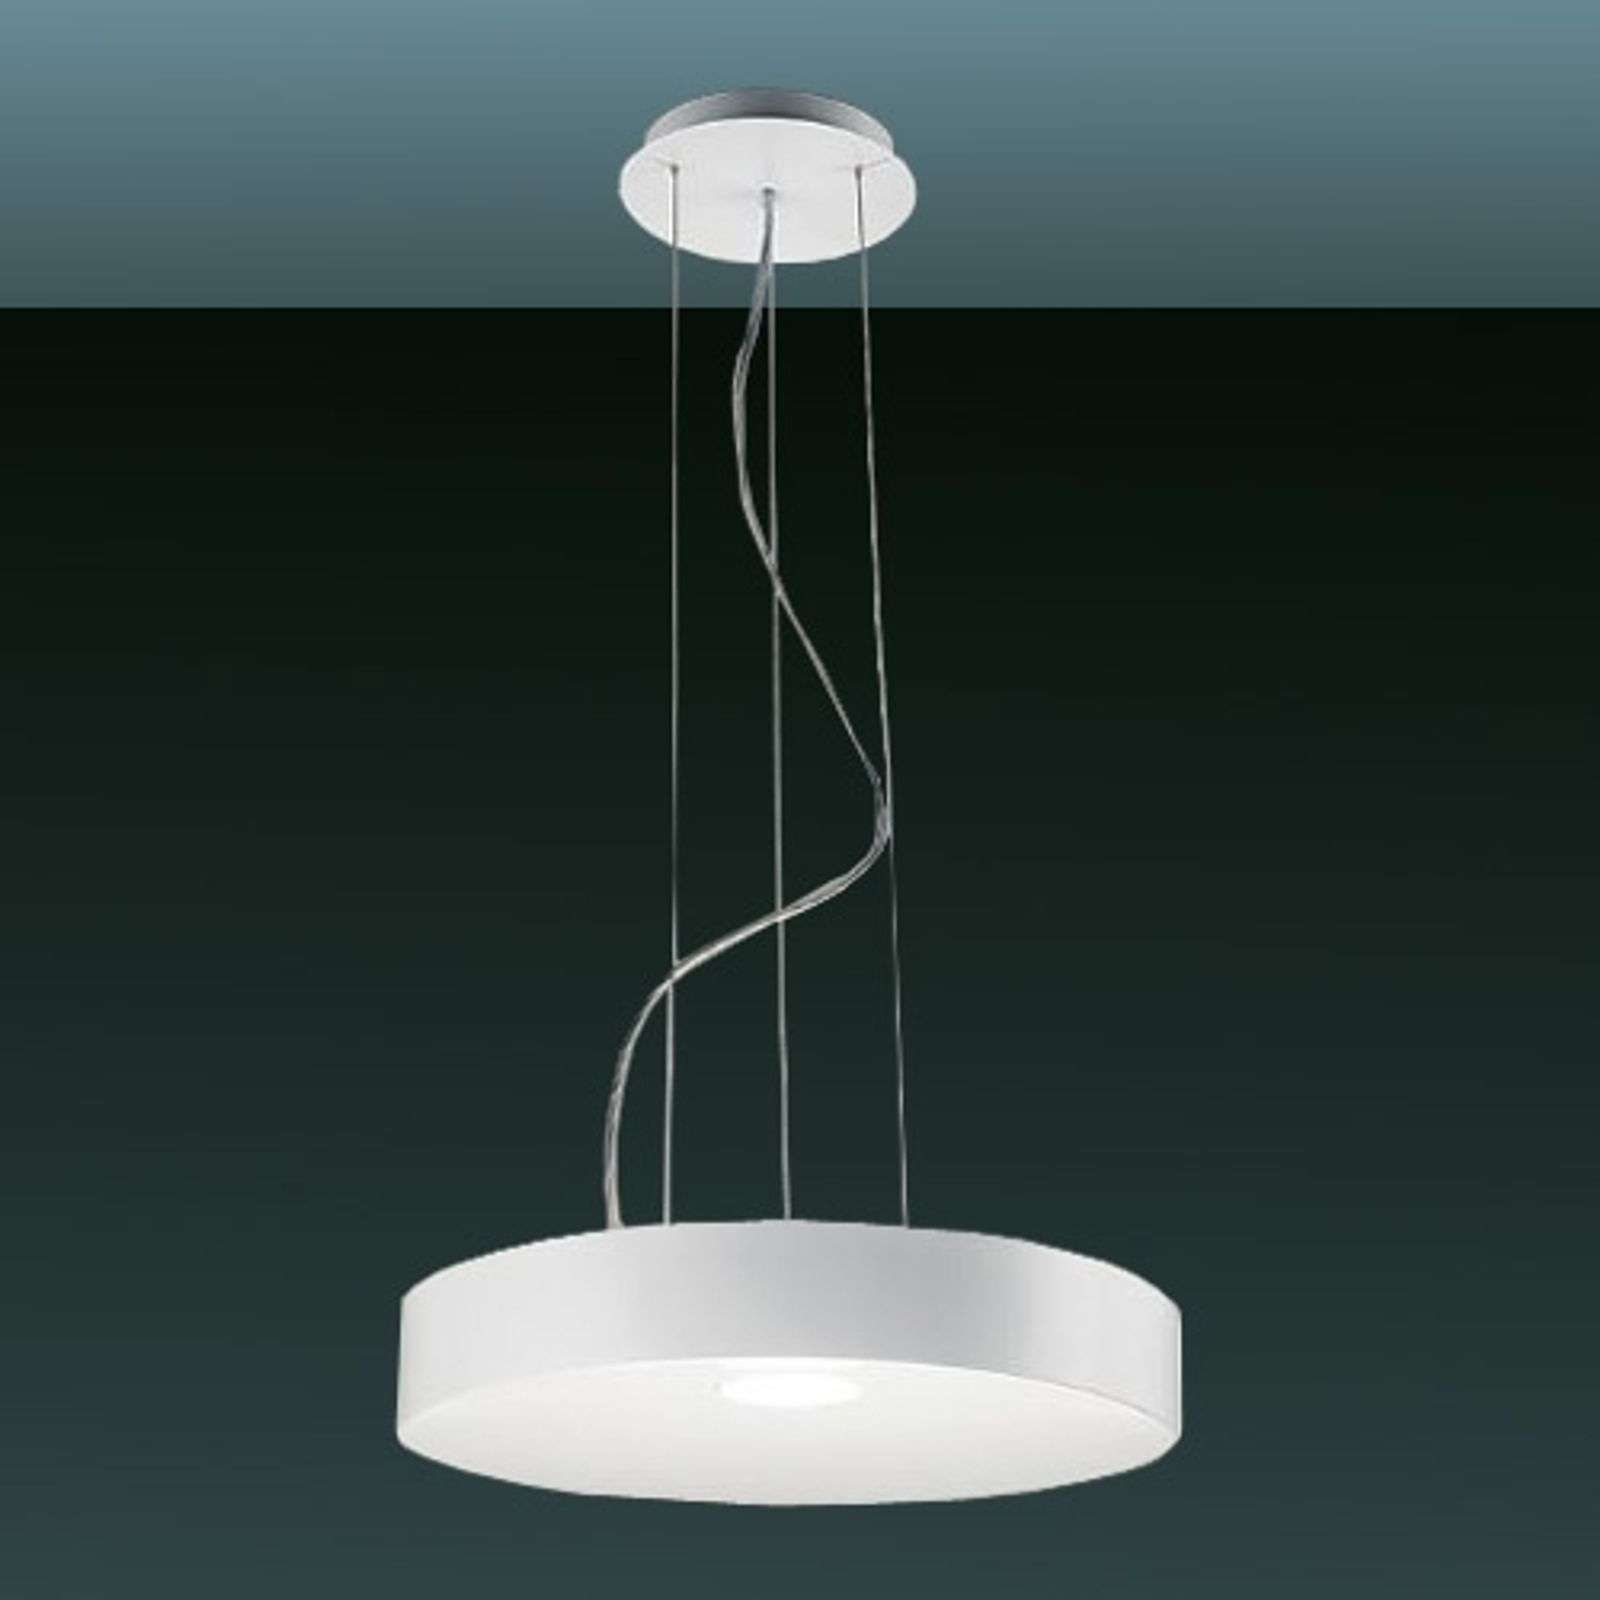 Led-hanglamp CRATER 55W, mat wit